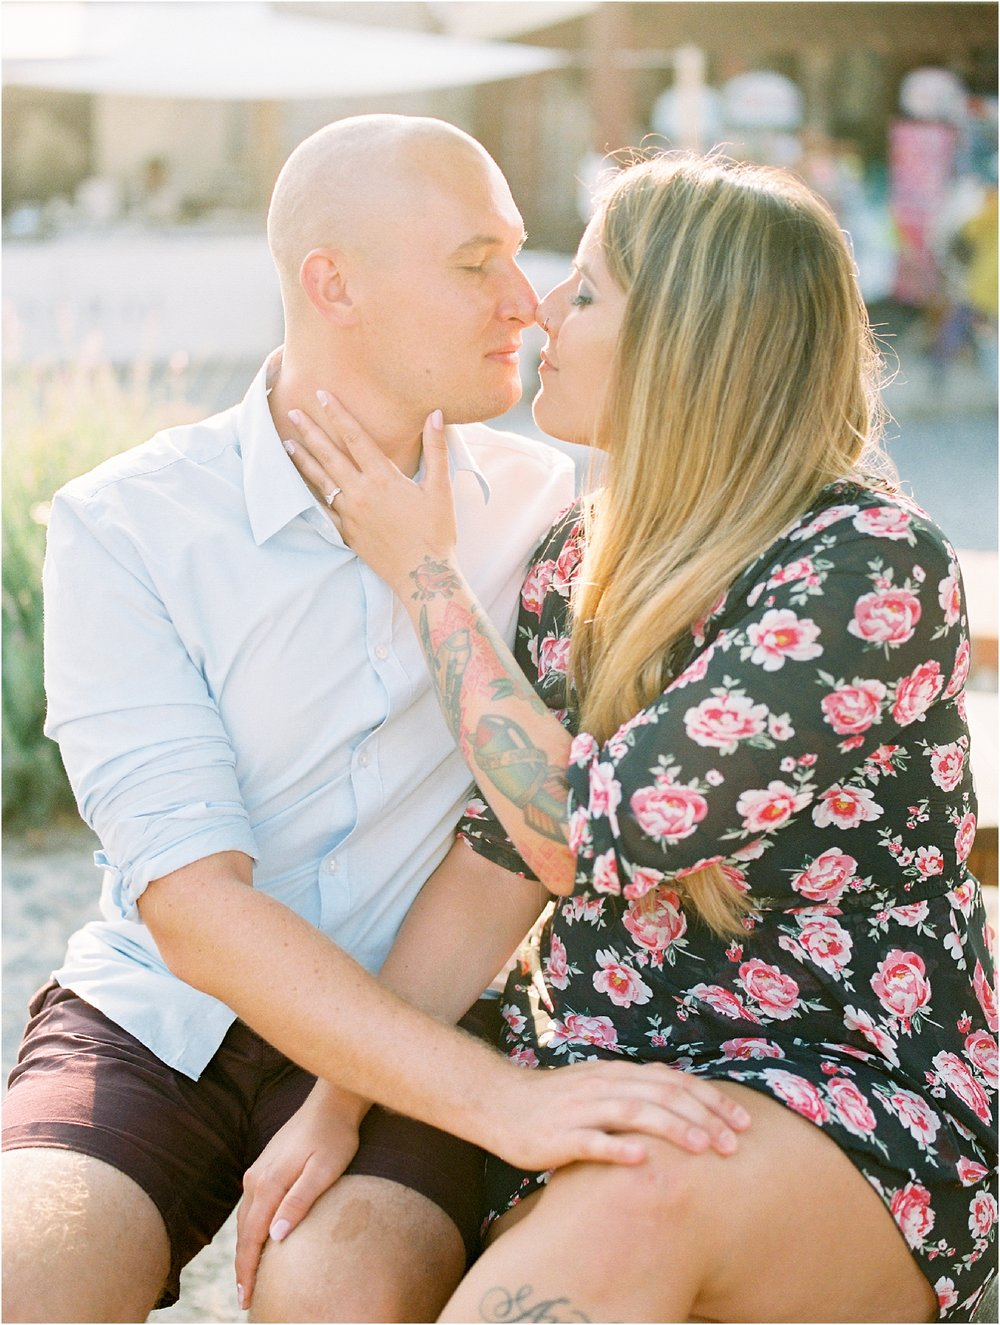 Lisa Silva Photography- Ponte Vedra Beach, St. Augustine and Jacksonville, Florida Fine Art Film Wedding and Boudoir Photography- Engagement Session in Tihany, Hungary- Destination Wedding Photographer_0037.jpg